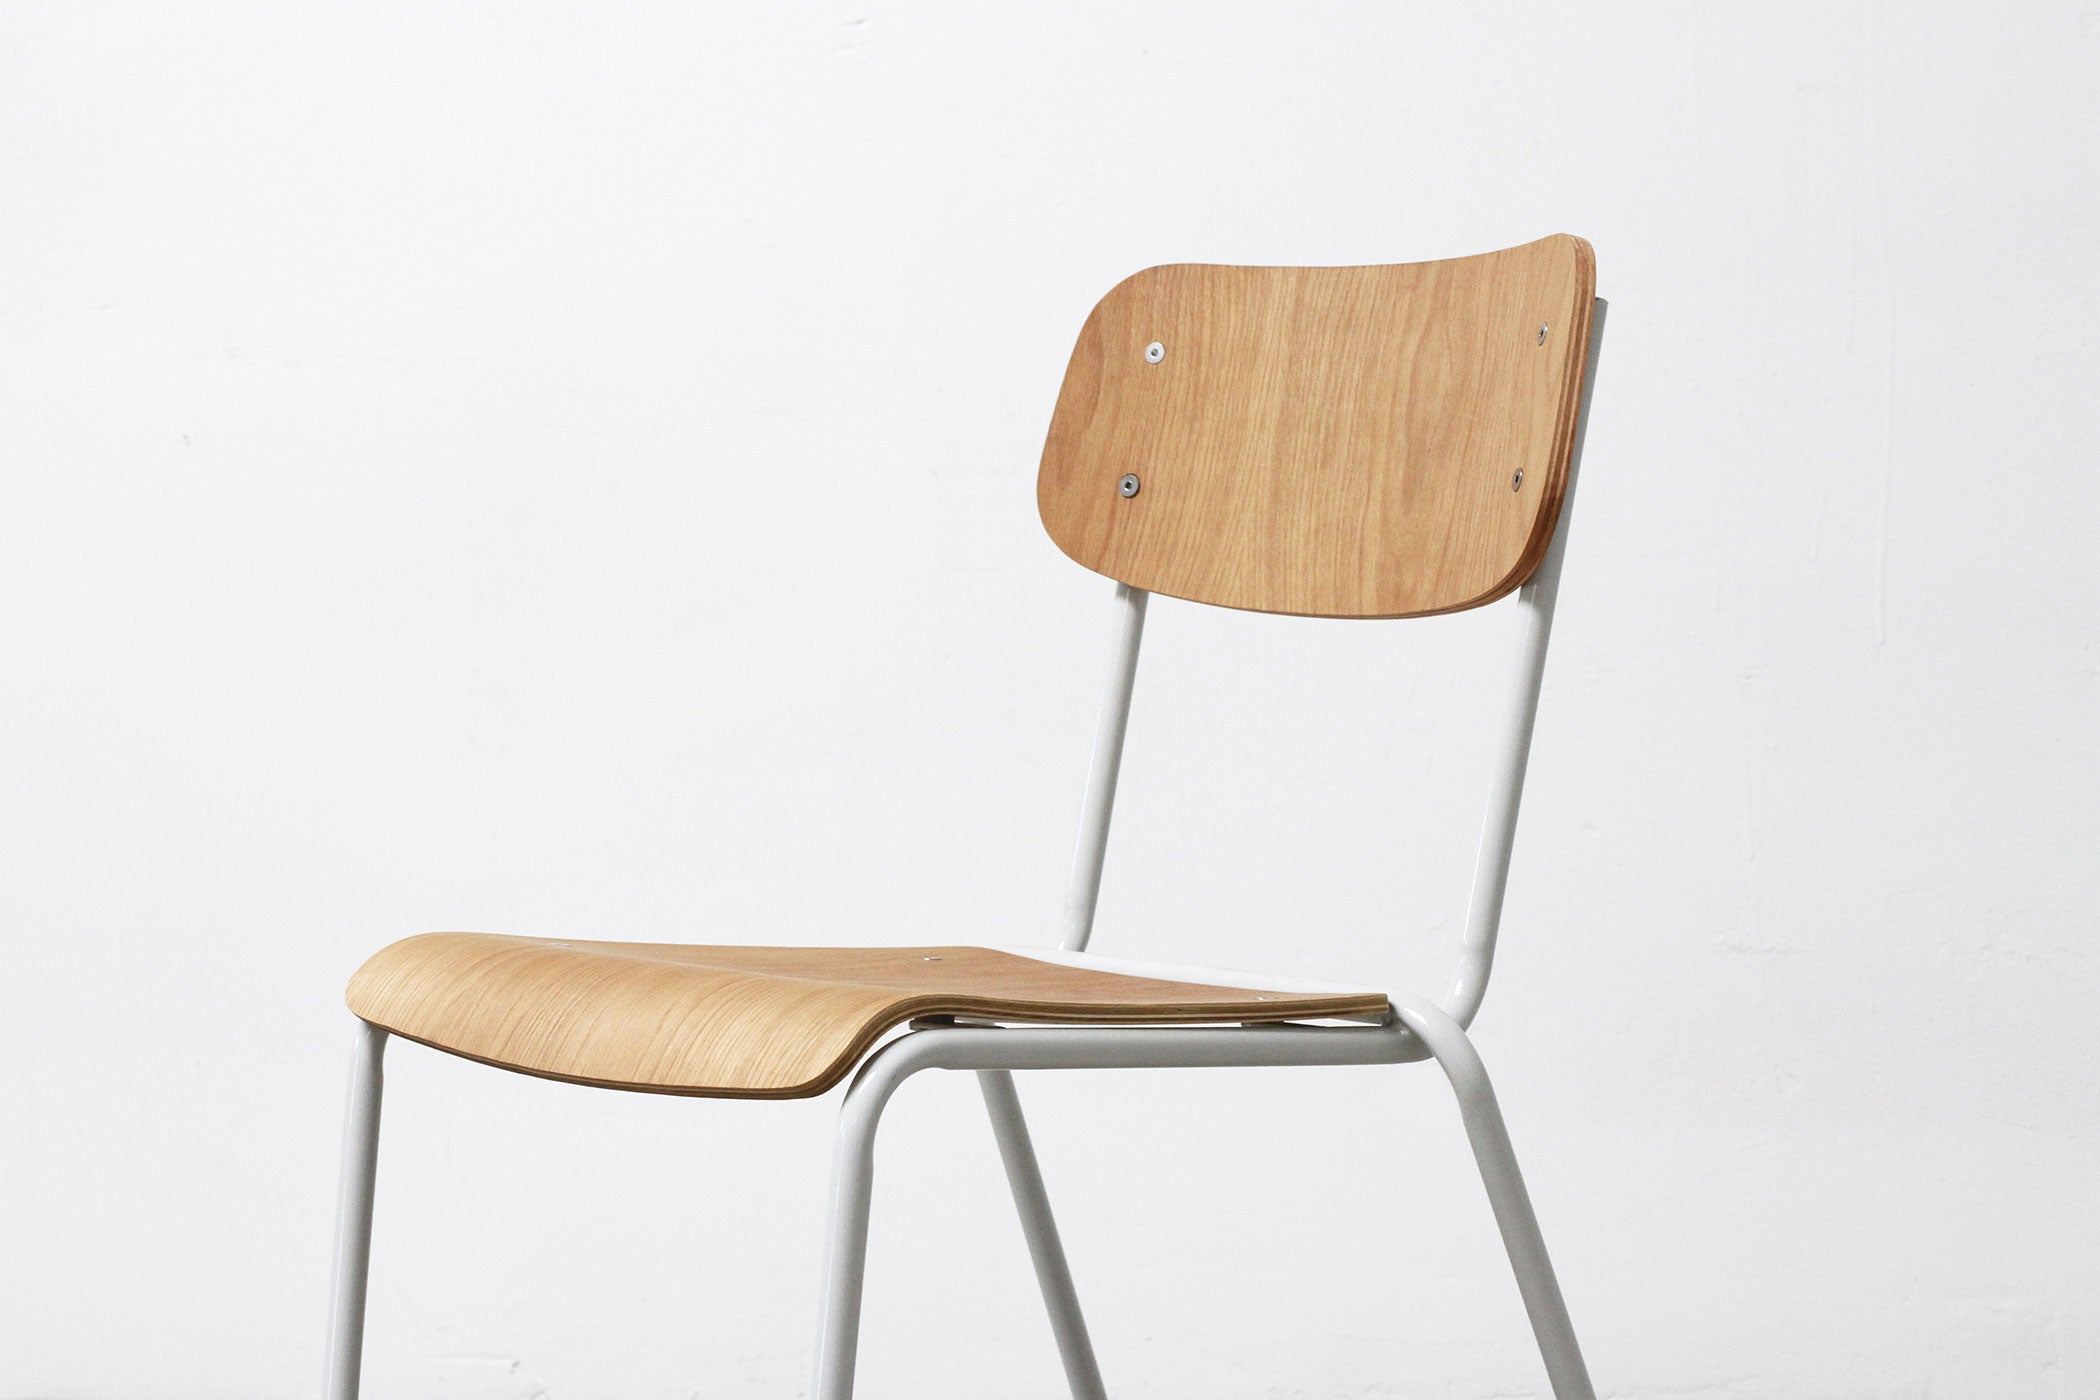 RAD Furniture's School Chair with White Oak - cropped